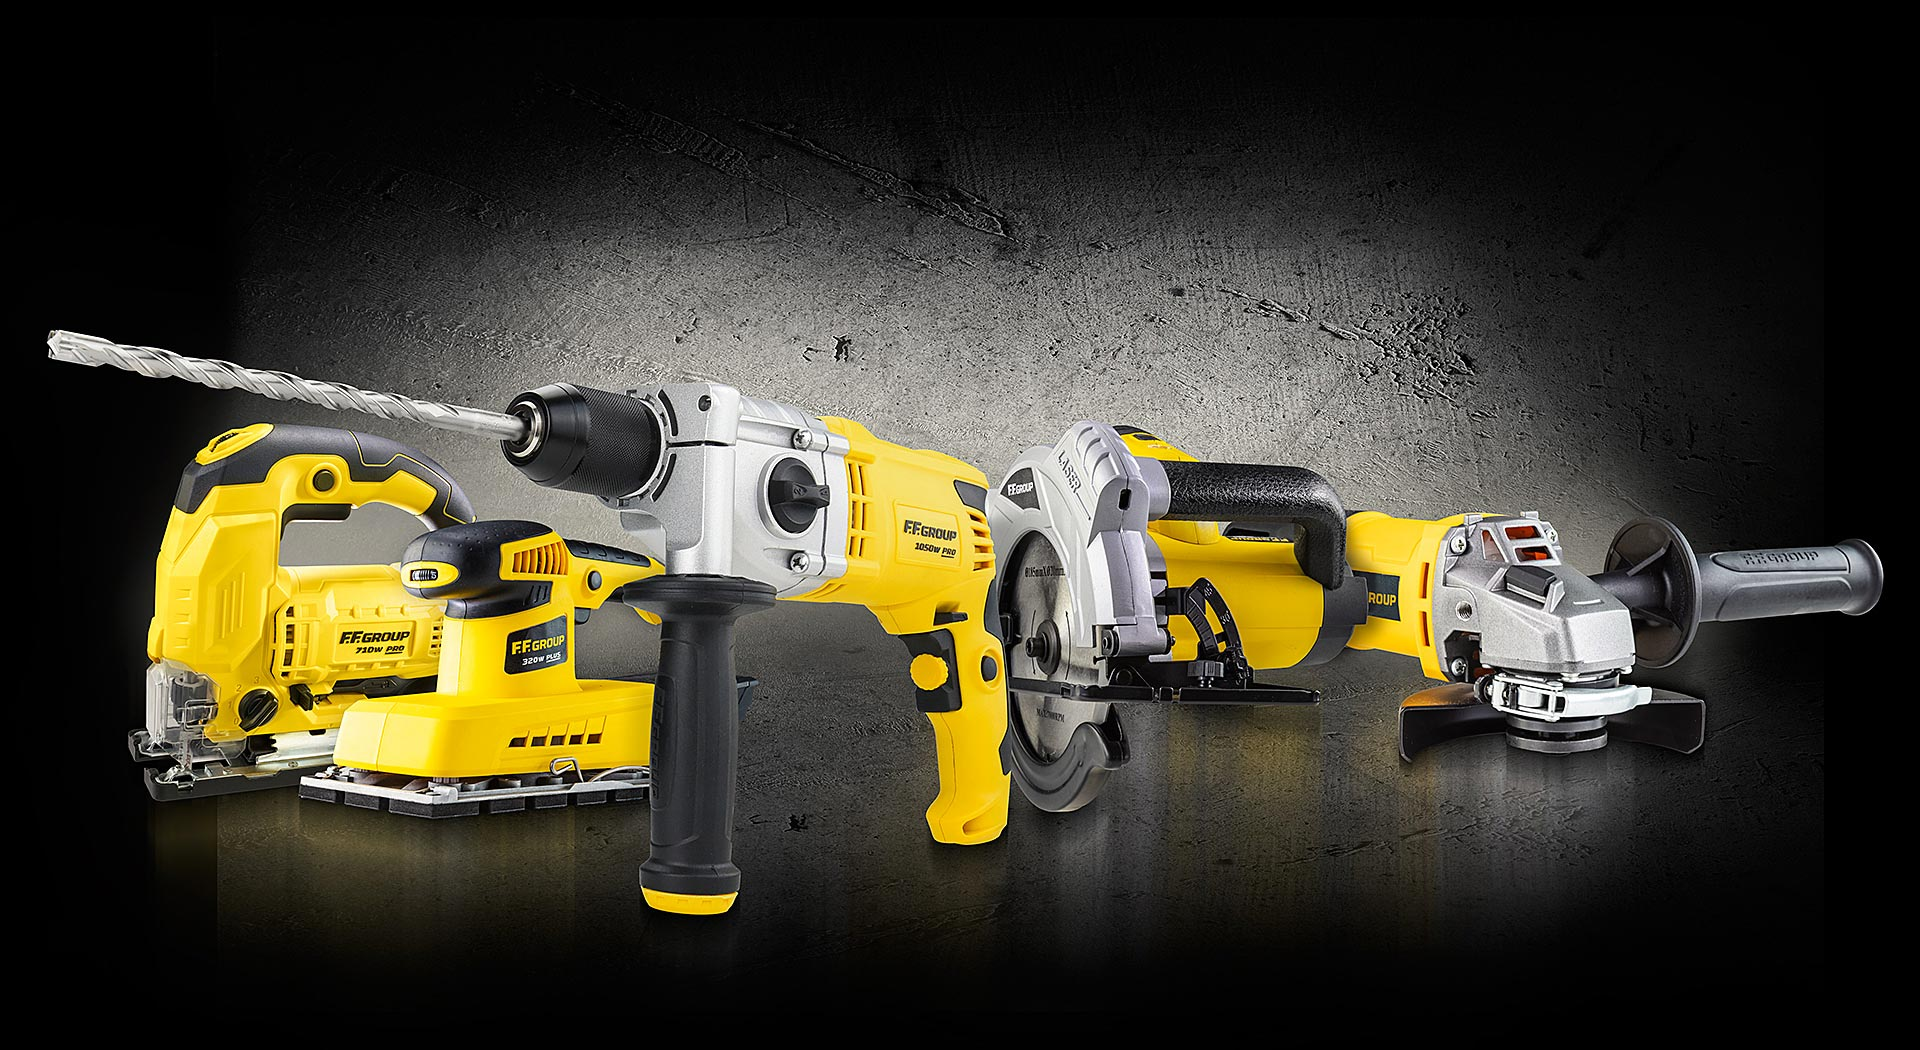 ffgroup-power-tools